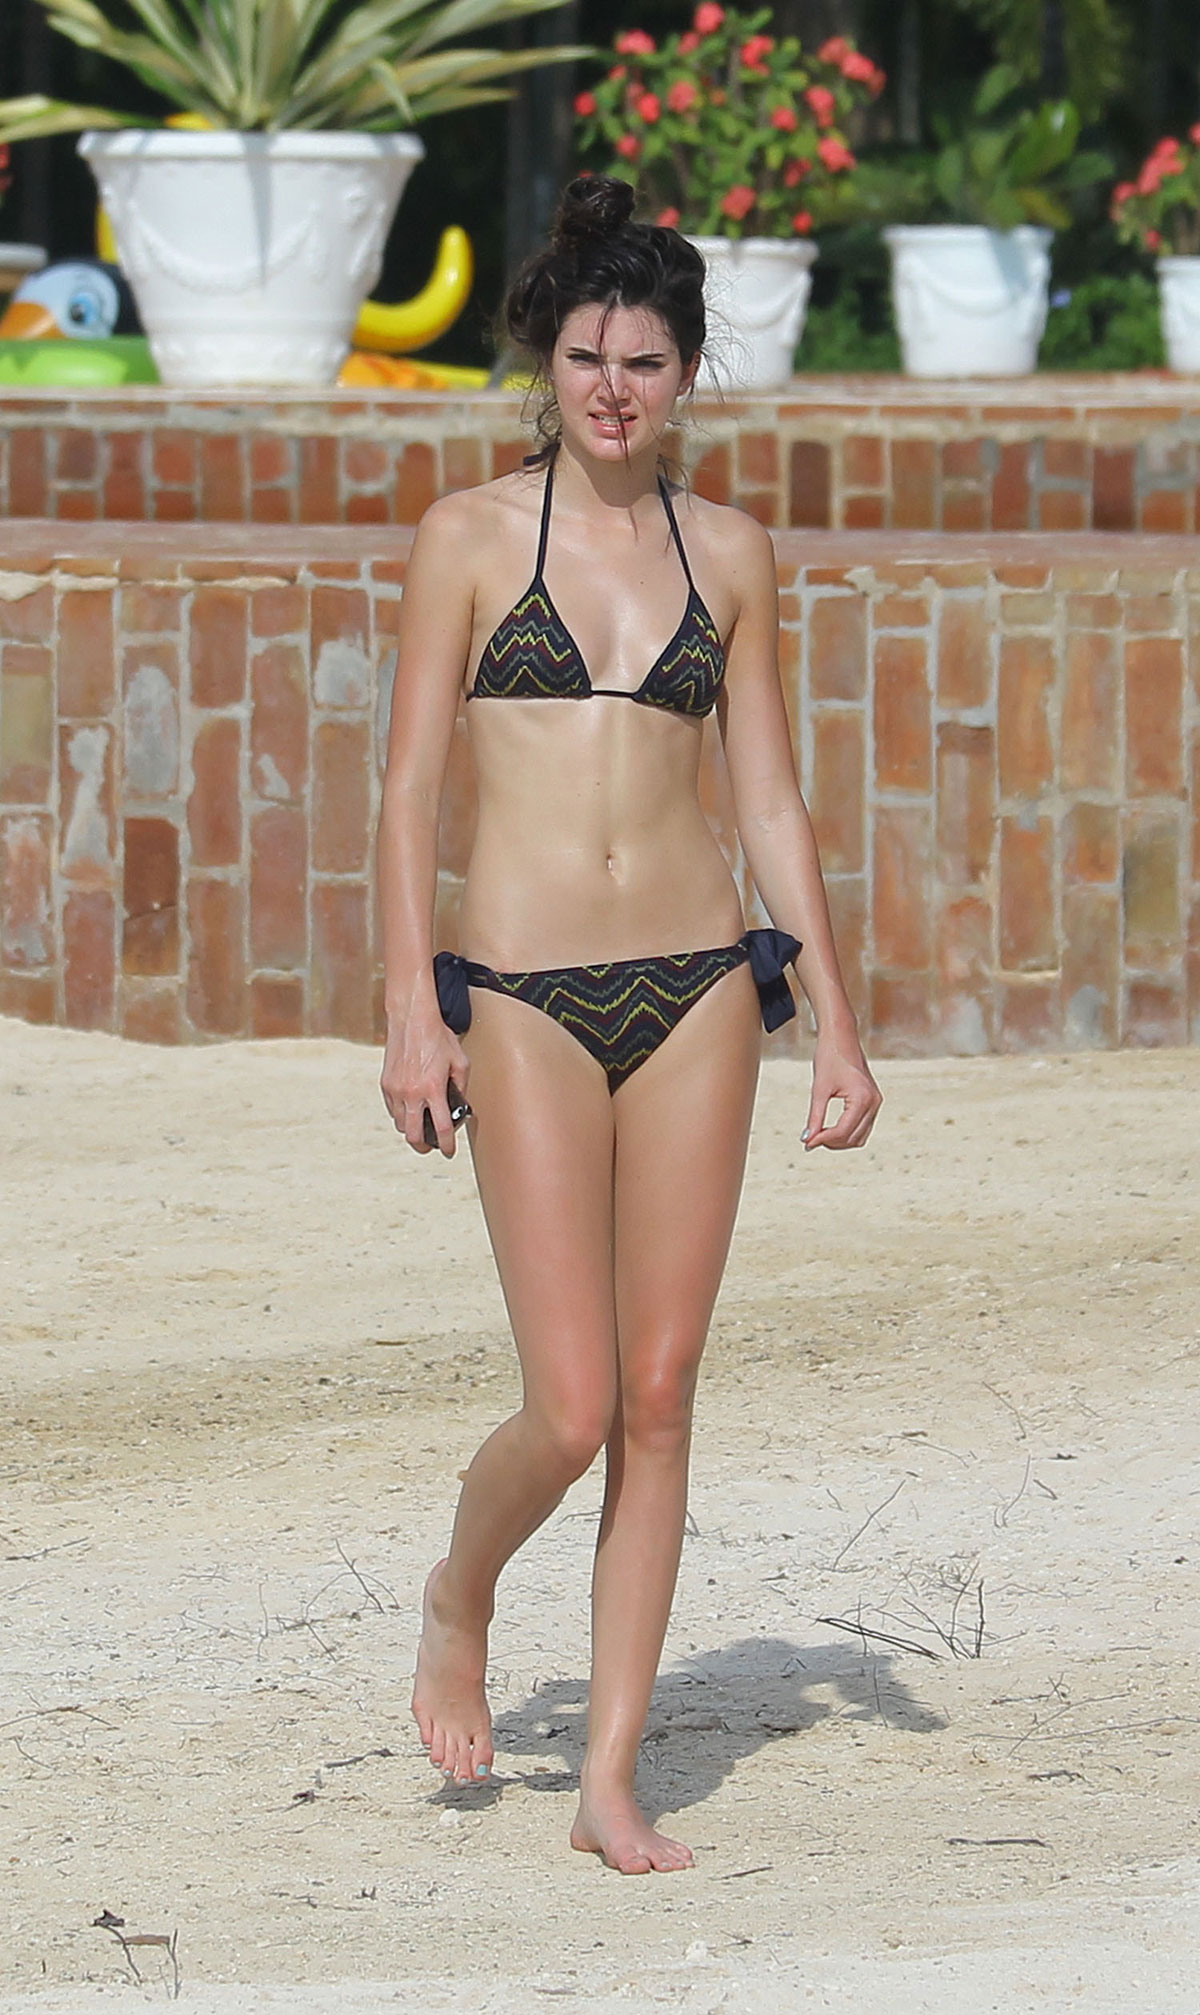 d9d1c9f7c9 KENDALL JENNER in Bikini on Vacation in the Dominican Republic ...